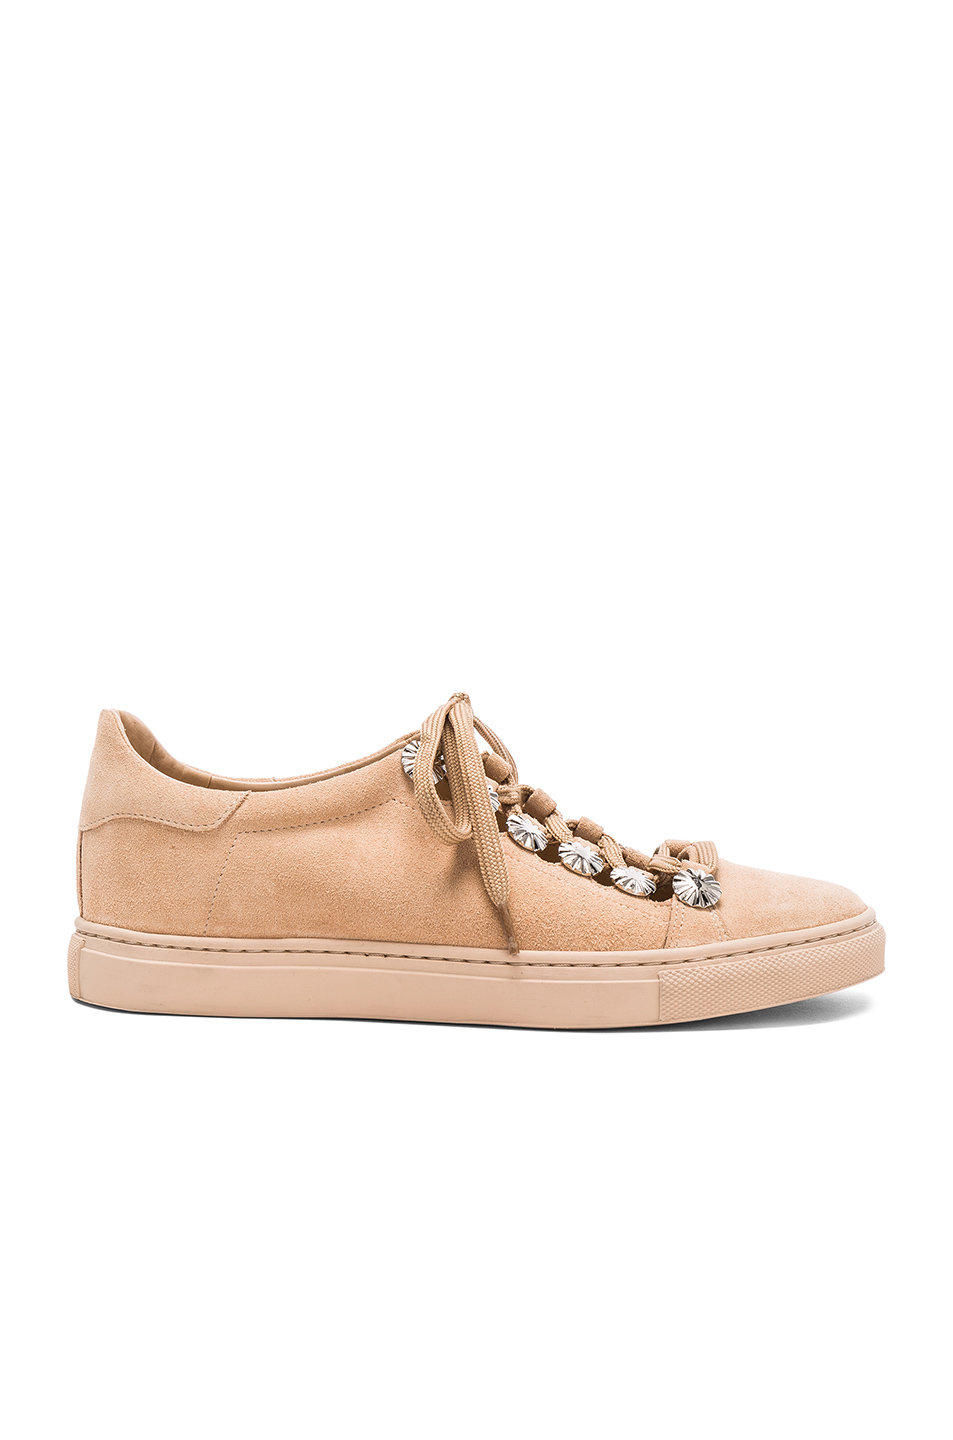 TOGA PULLA Studded Suede Sneakers in Neutrals